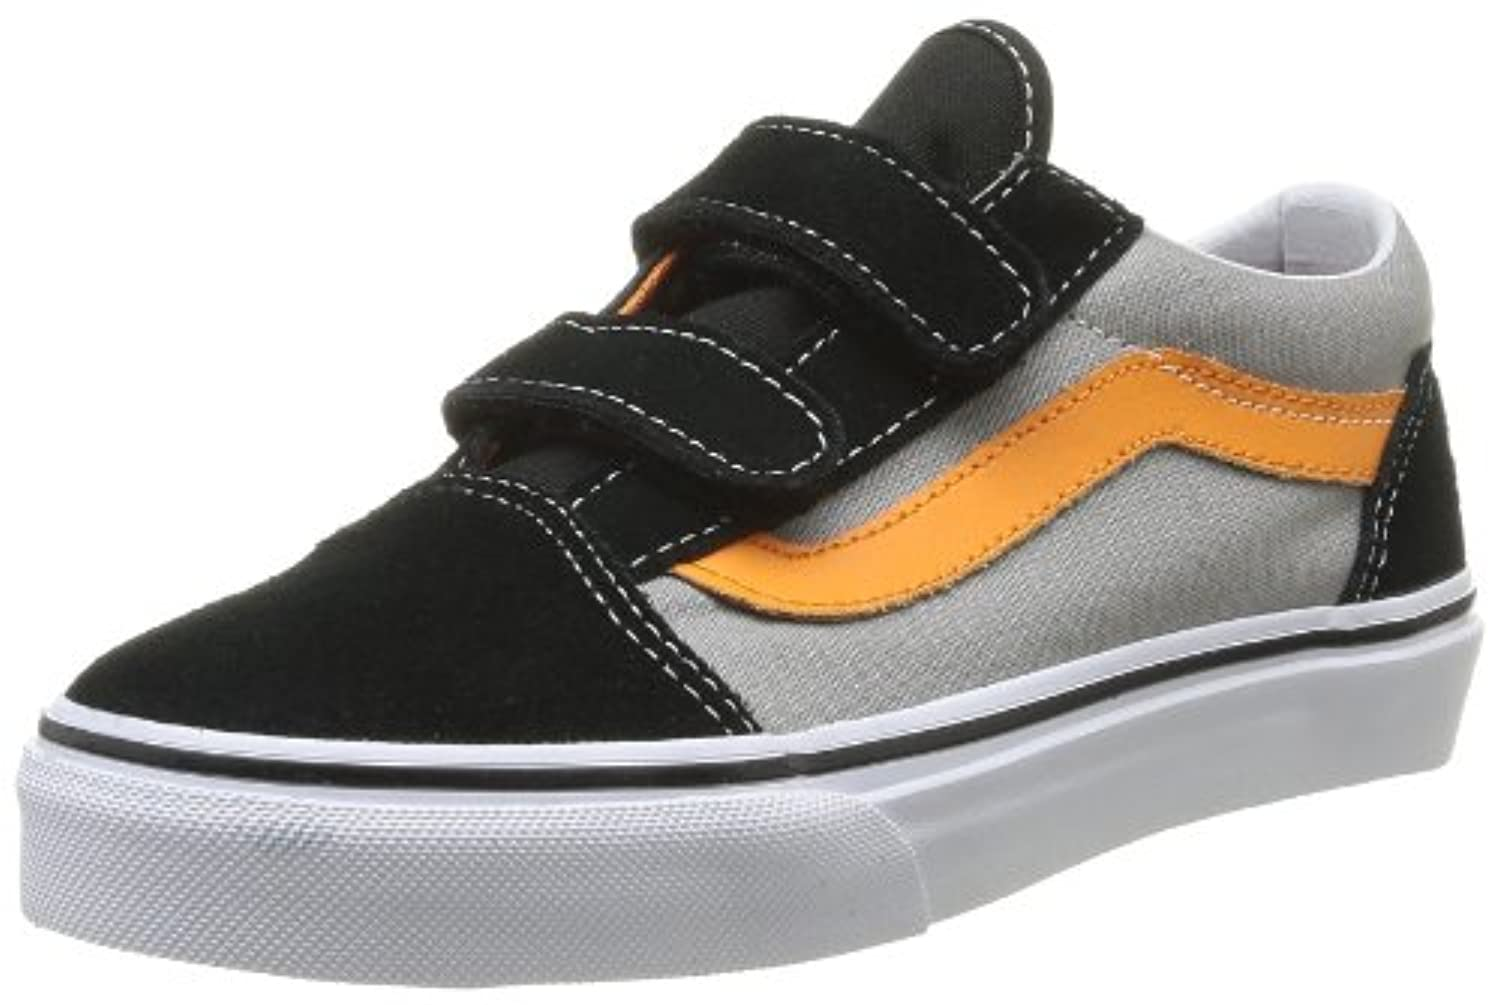 Vans K Old Skool V Pop, Unisex Kids' Hi-Top Trainers, Black (Blk/Blk Enr), 1 UK